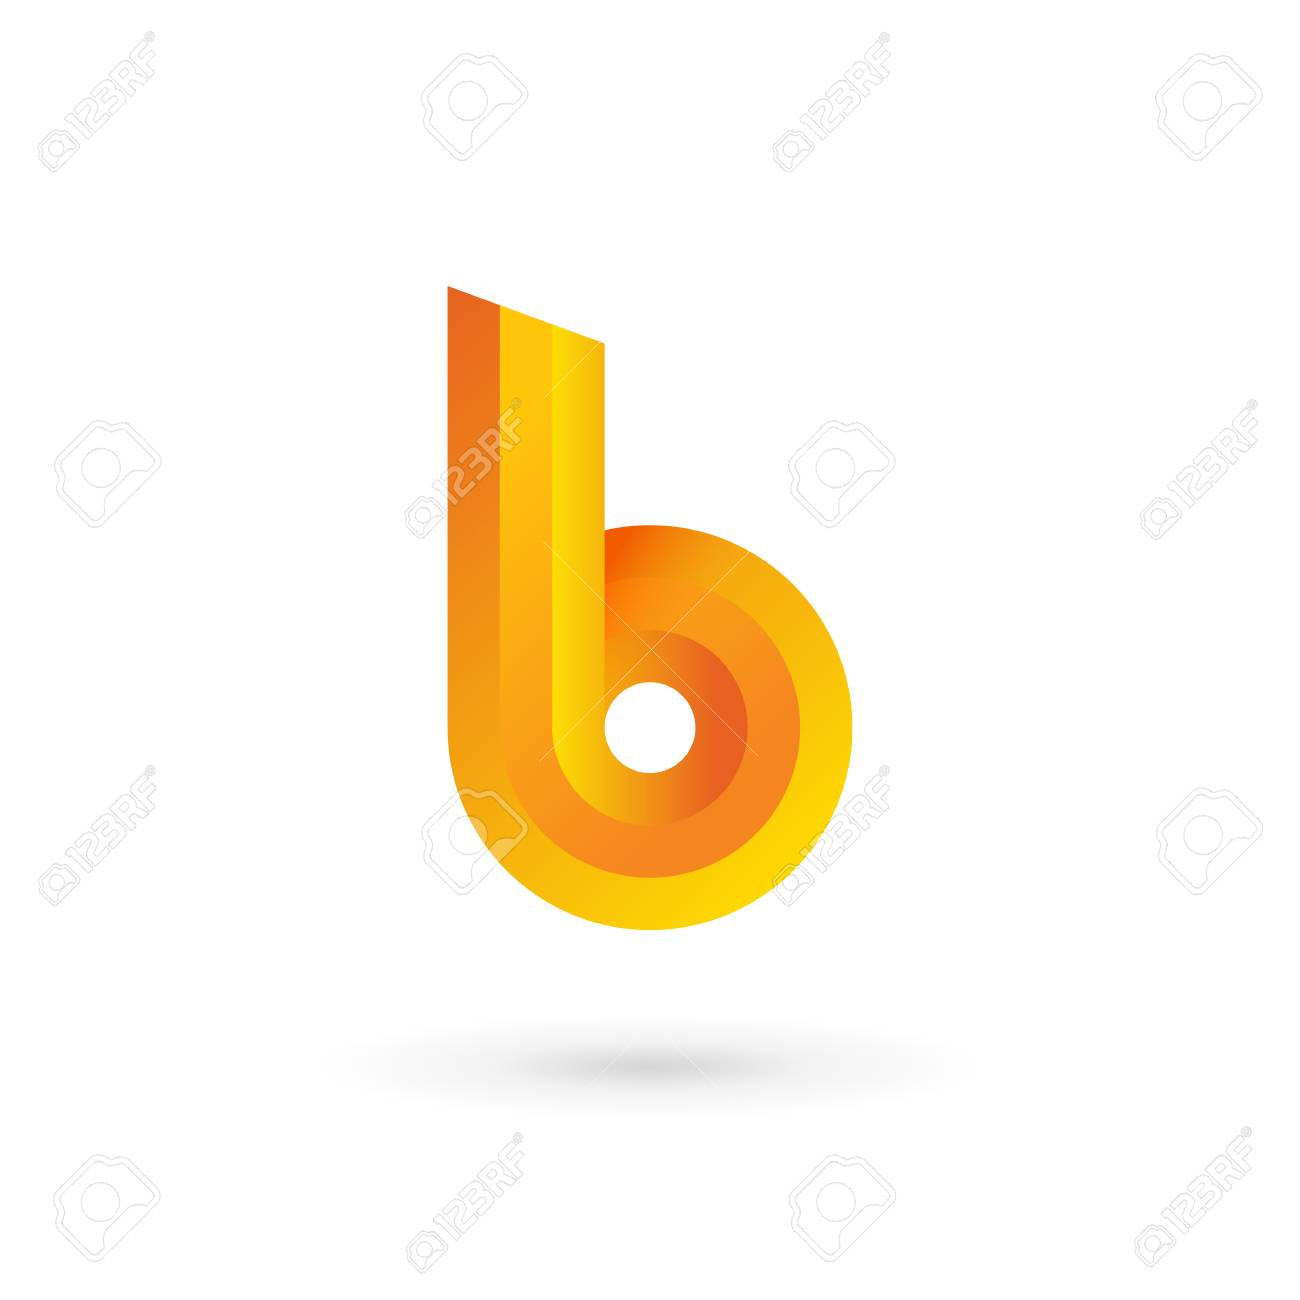 Letter b logo icon design template elements vector color sign letter b logo icon design template elements vector color sign stock vector 32592498 pronofoot35fo Image collections